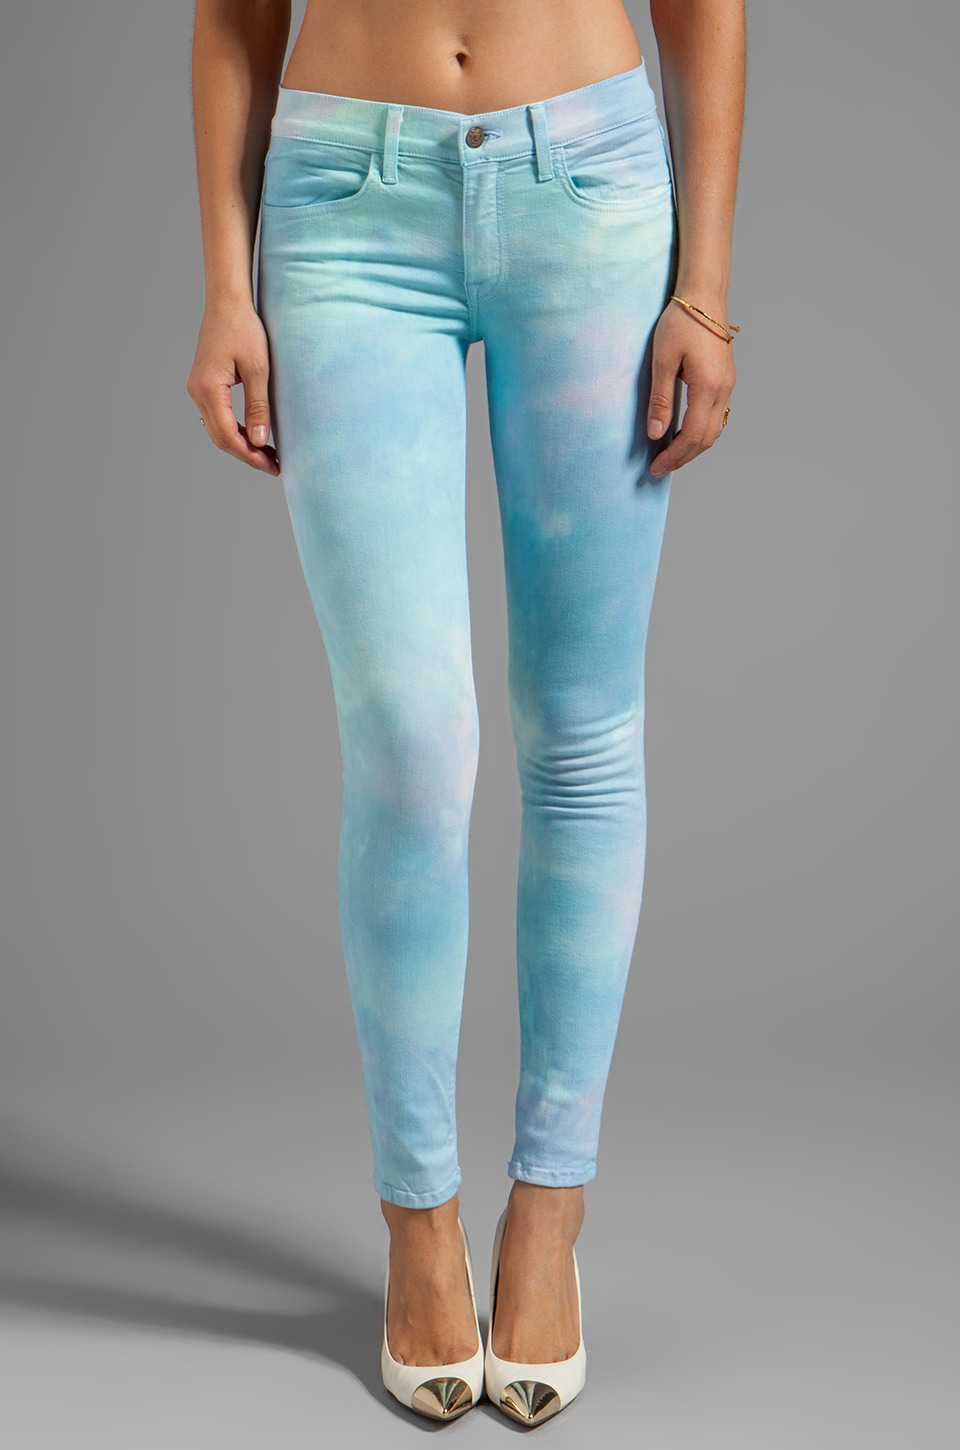 Wildfox Couture Marine Mid-Rise Skinny in Day Dream